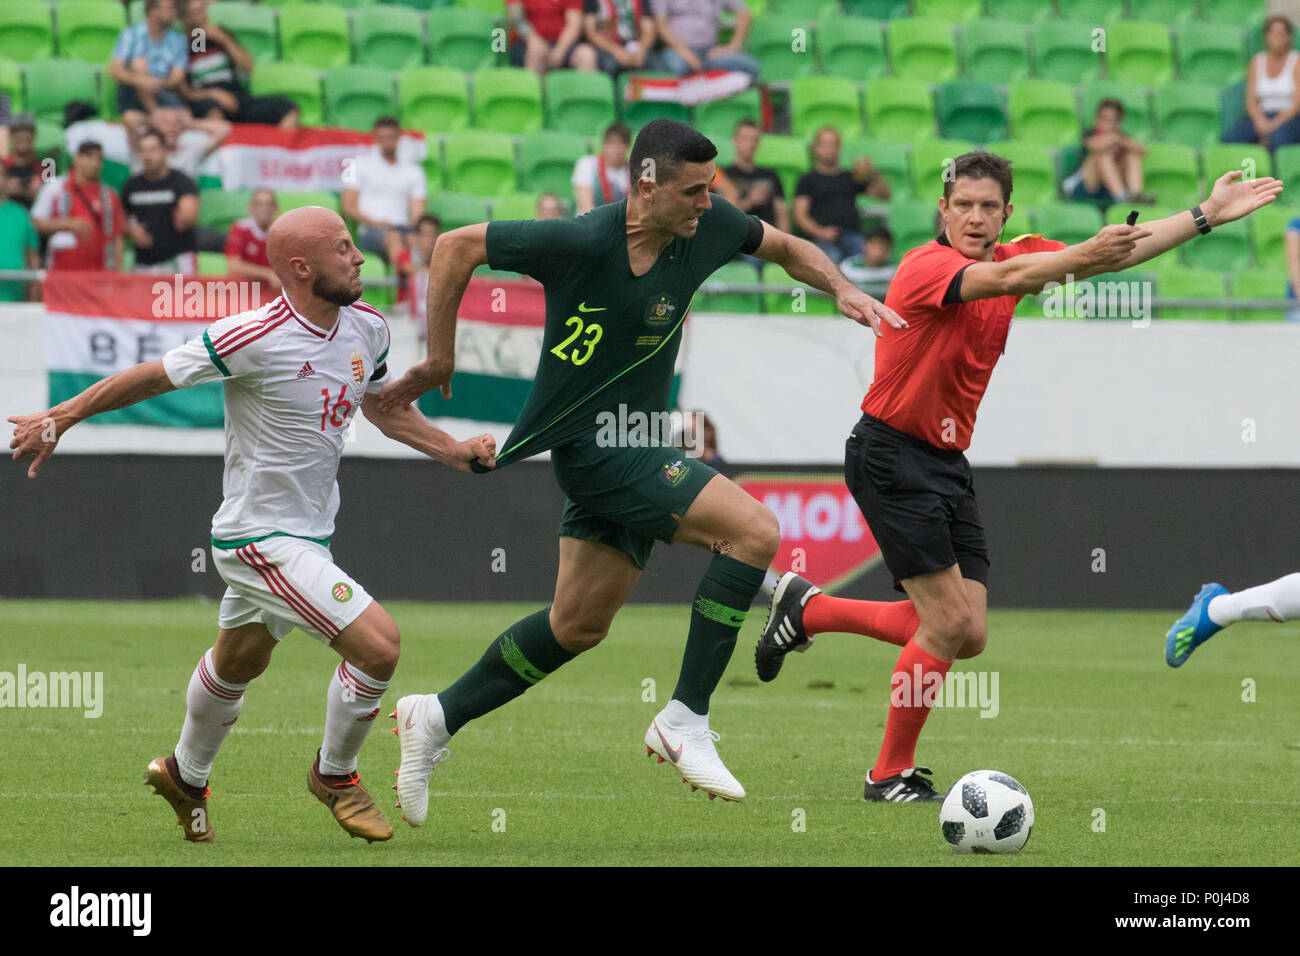 Budapest. 9th June, 2018. Tom Rogic (C) of Australia vies with Jozsef Varga of Hungary during the friendly match at the Groupama Arena in Budapest, Hungary on June 9, 2018. Australia won 2-1. Credit: Attila Volgyi/Xinhua/Alamy Live News - Stock Image